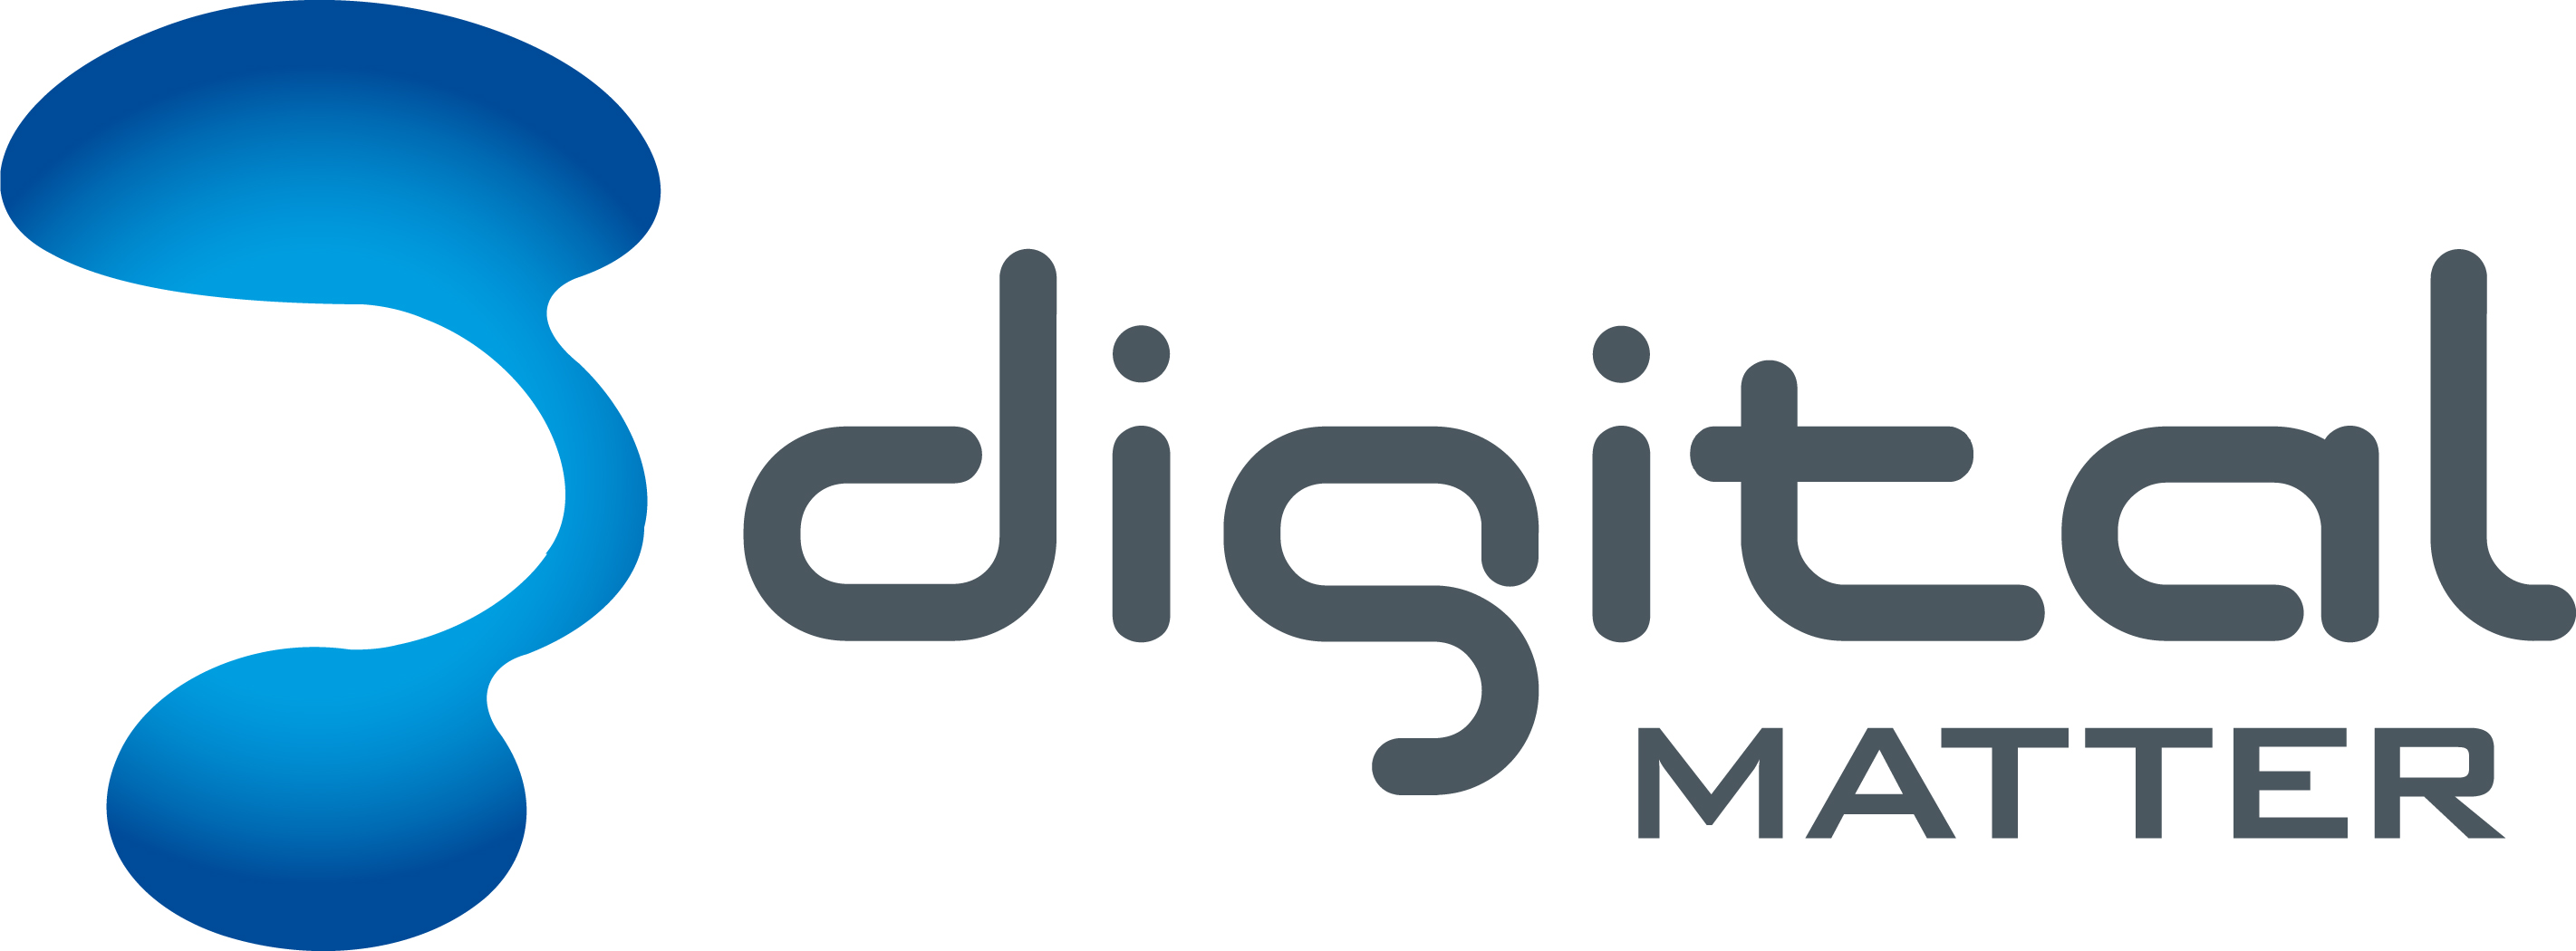 Digital Matter (Pty) Ltd lgoo